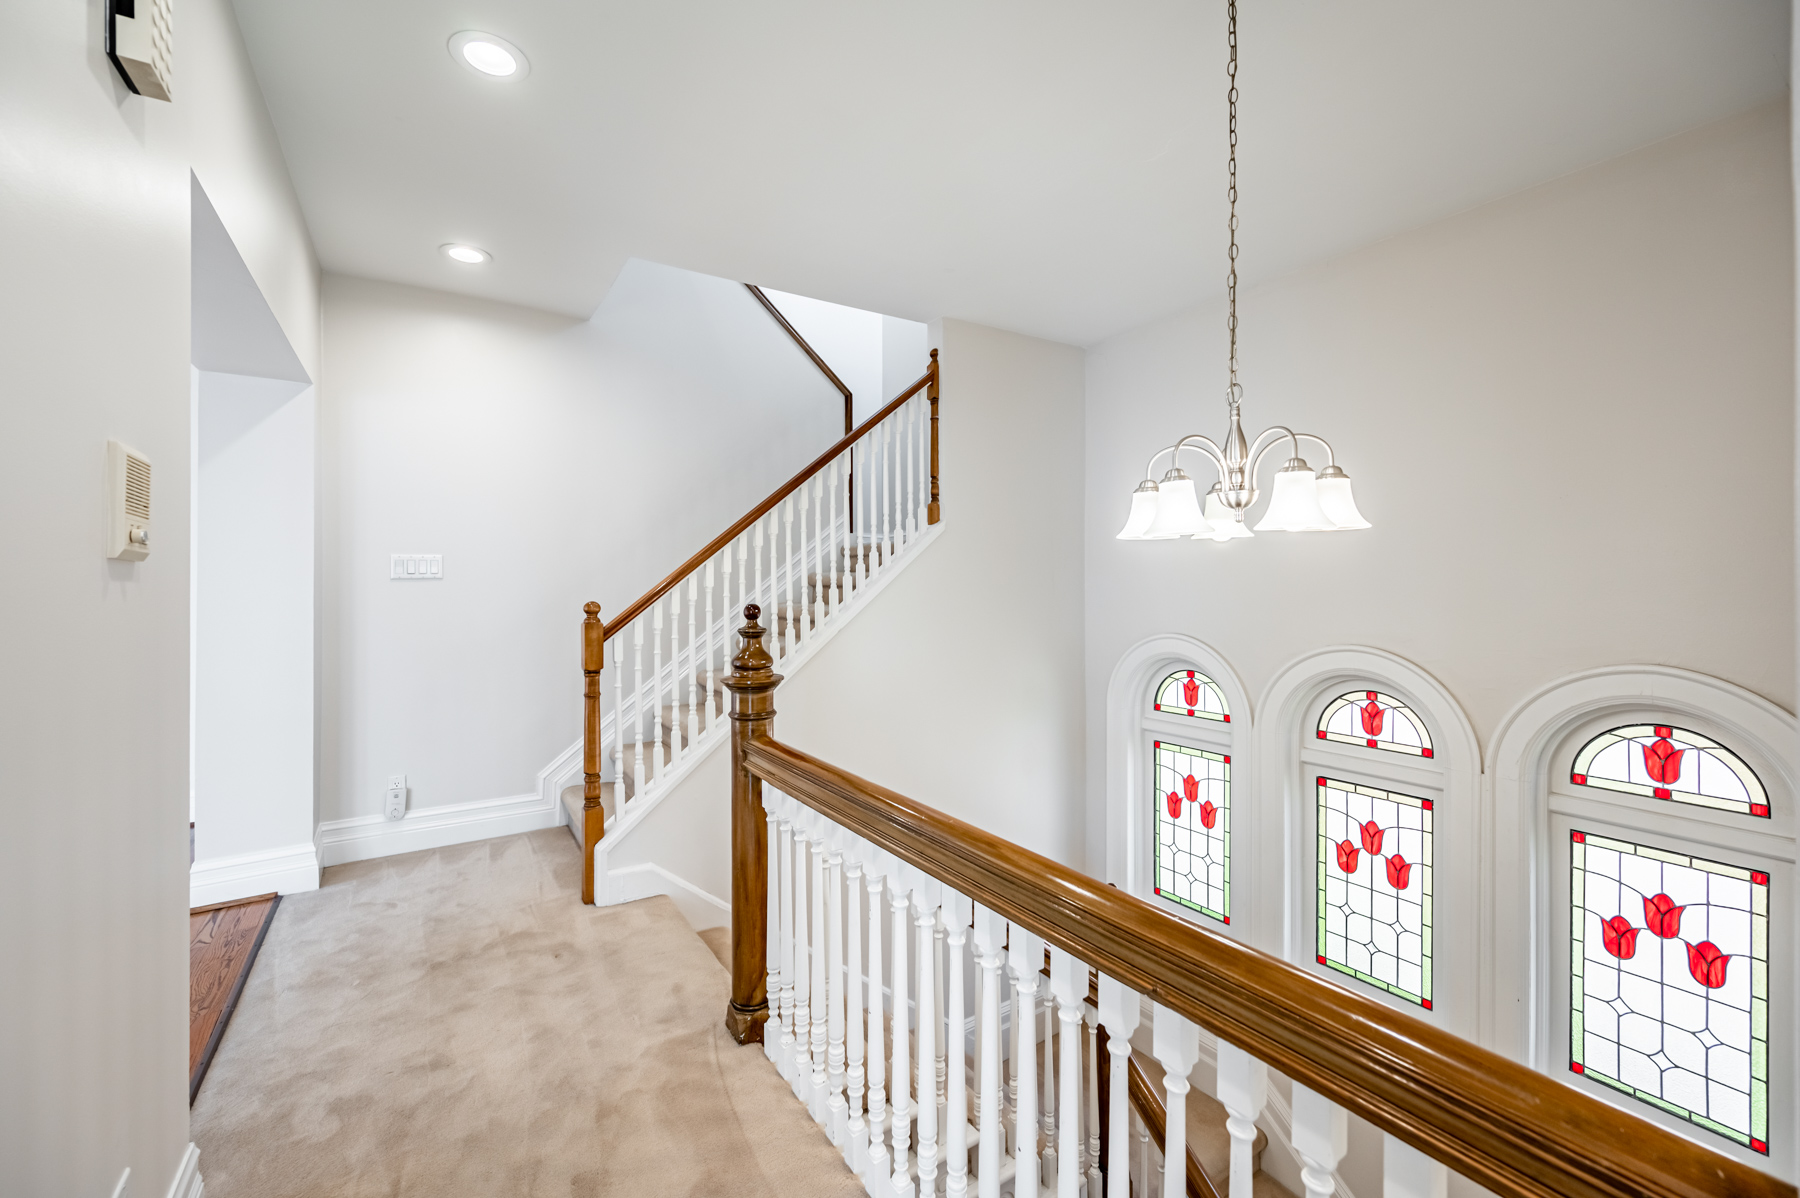 House stairway with shiny wood banisters, silver chandelier, pot-lights and stained glass windows.